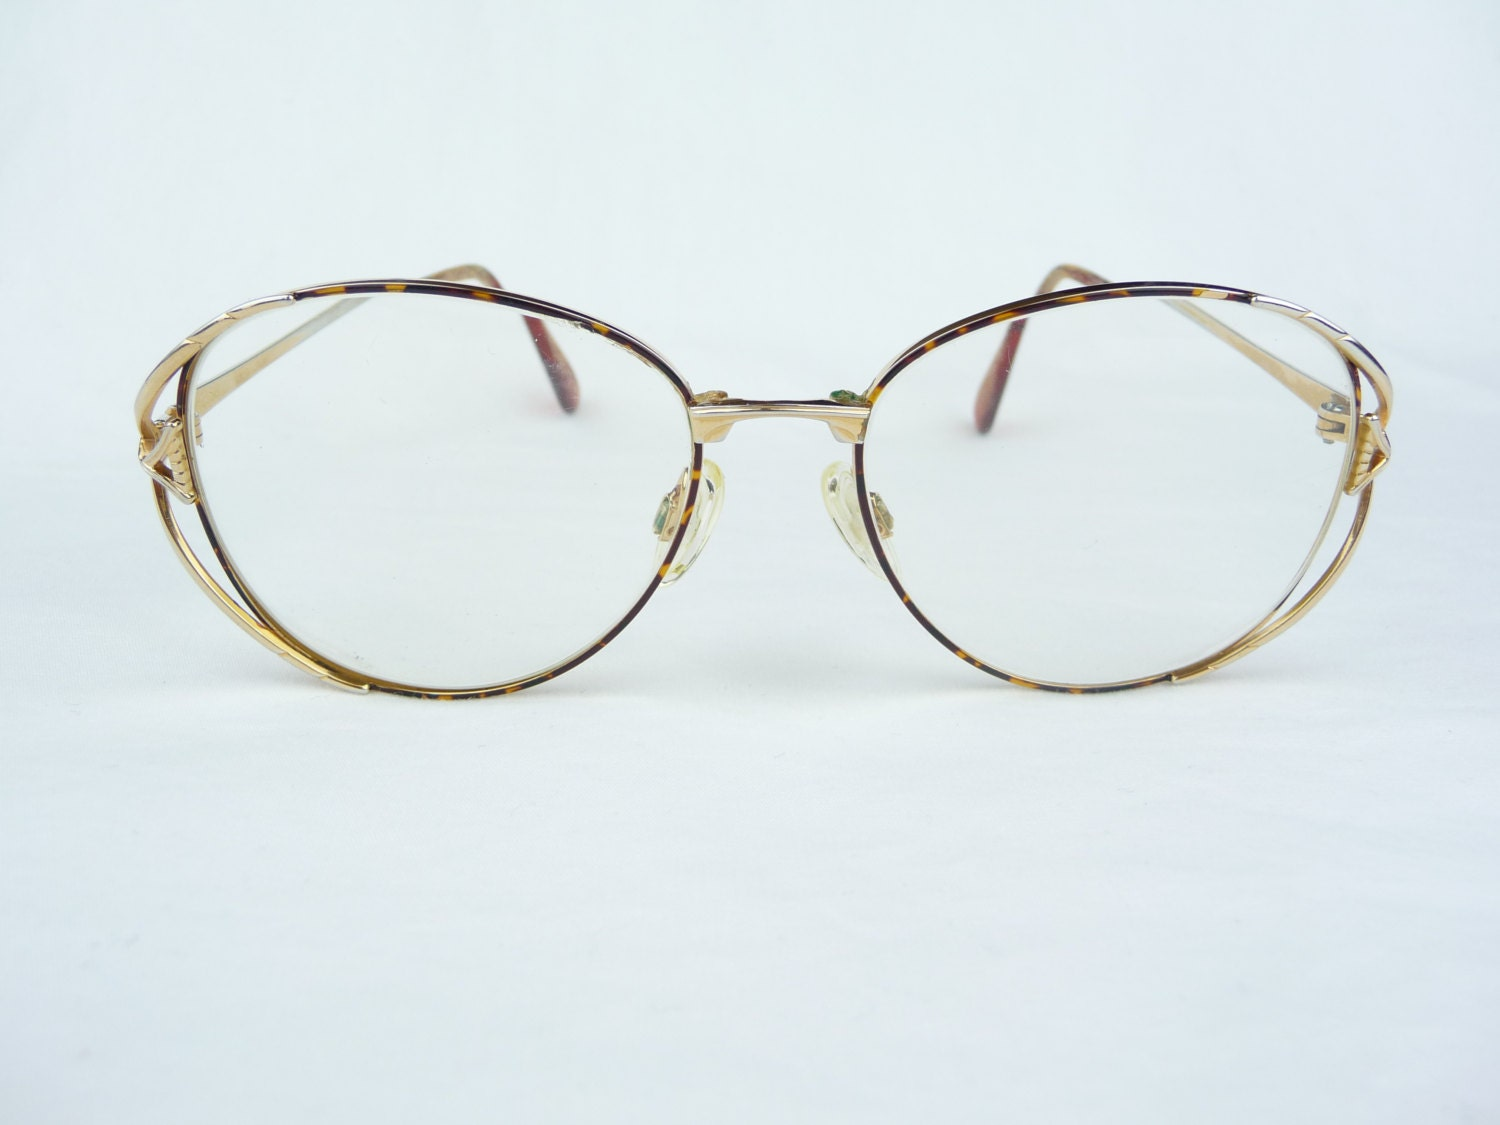 Gold Wire Glasses Frames : vintage eyeglasses vintage eyewear gold wire by ...